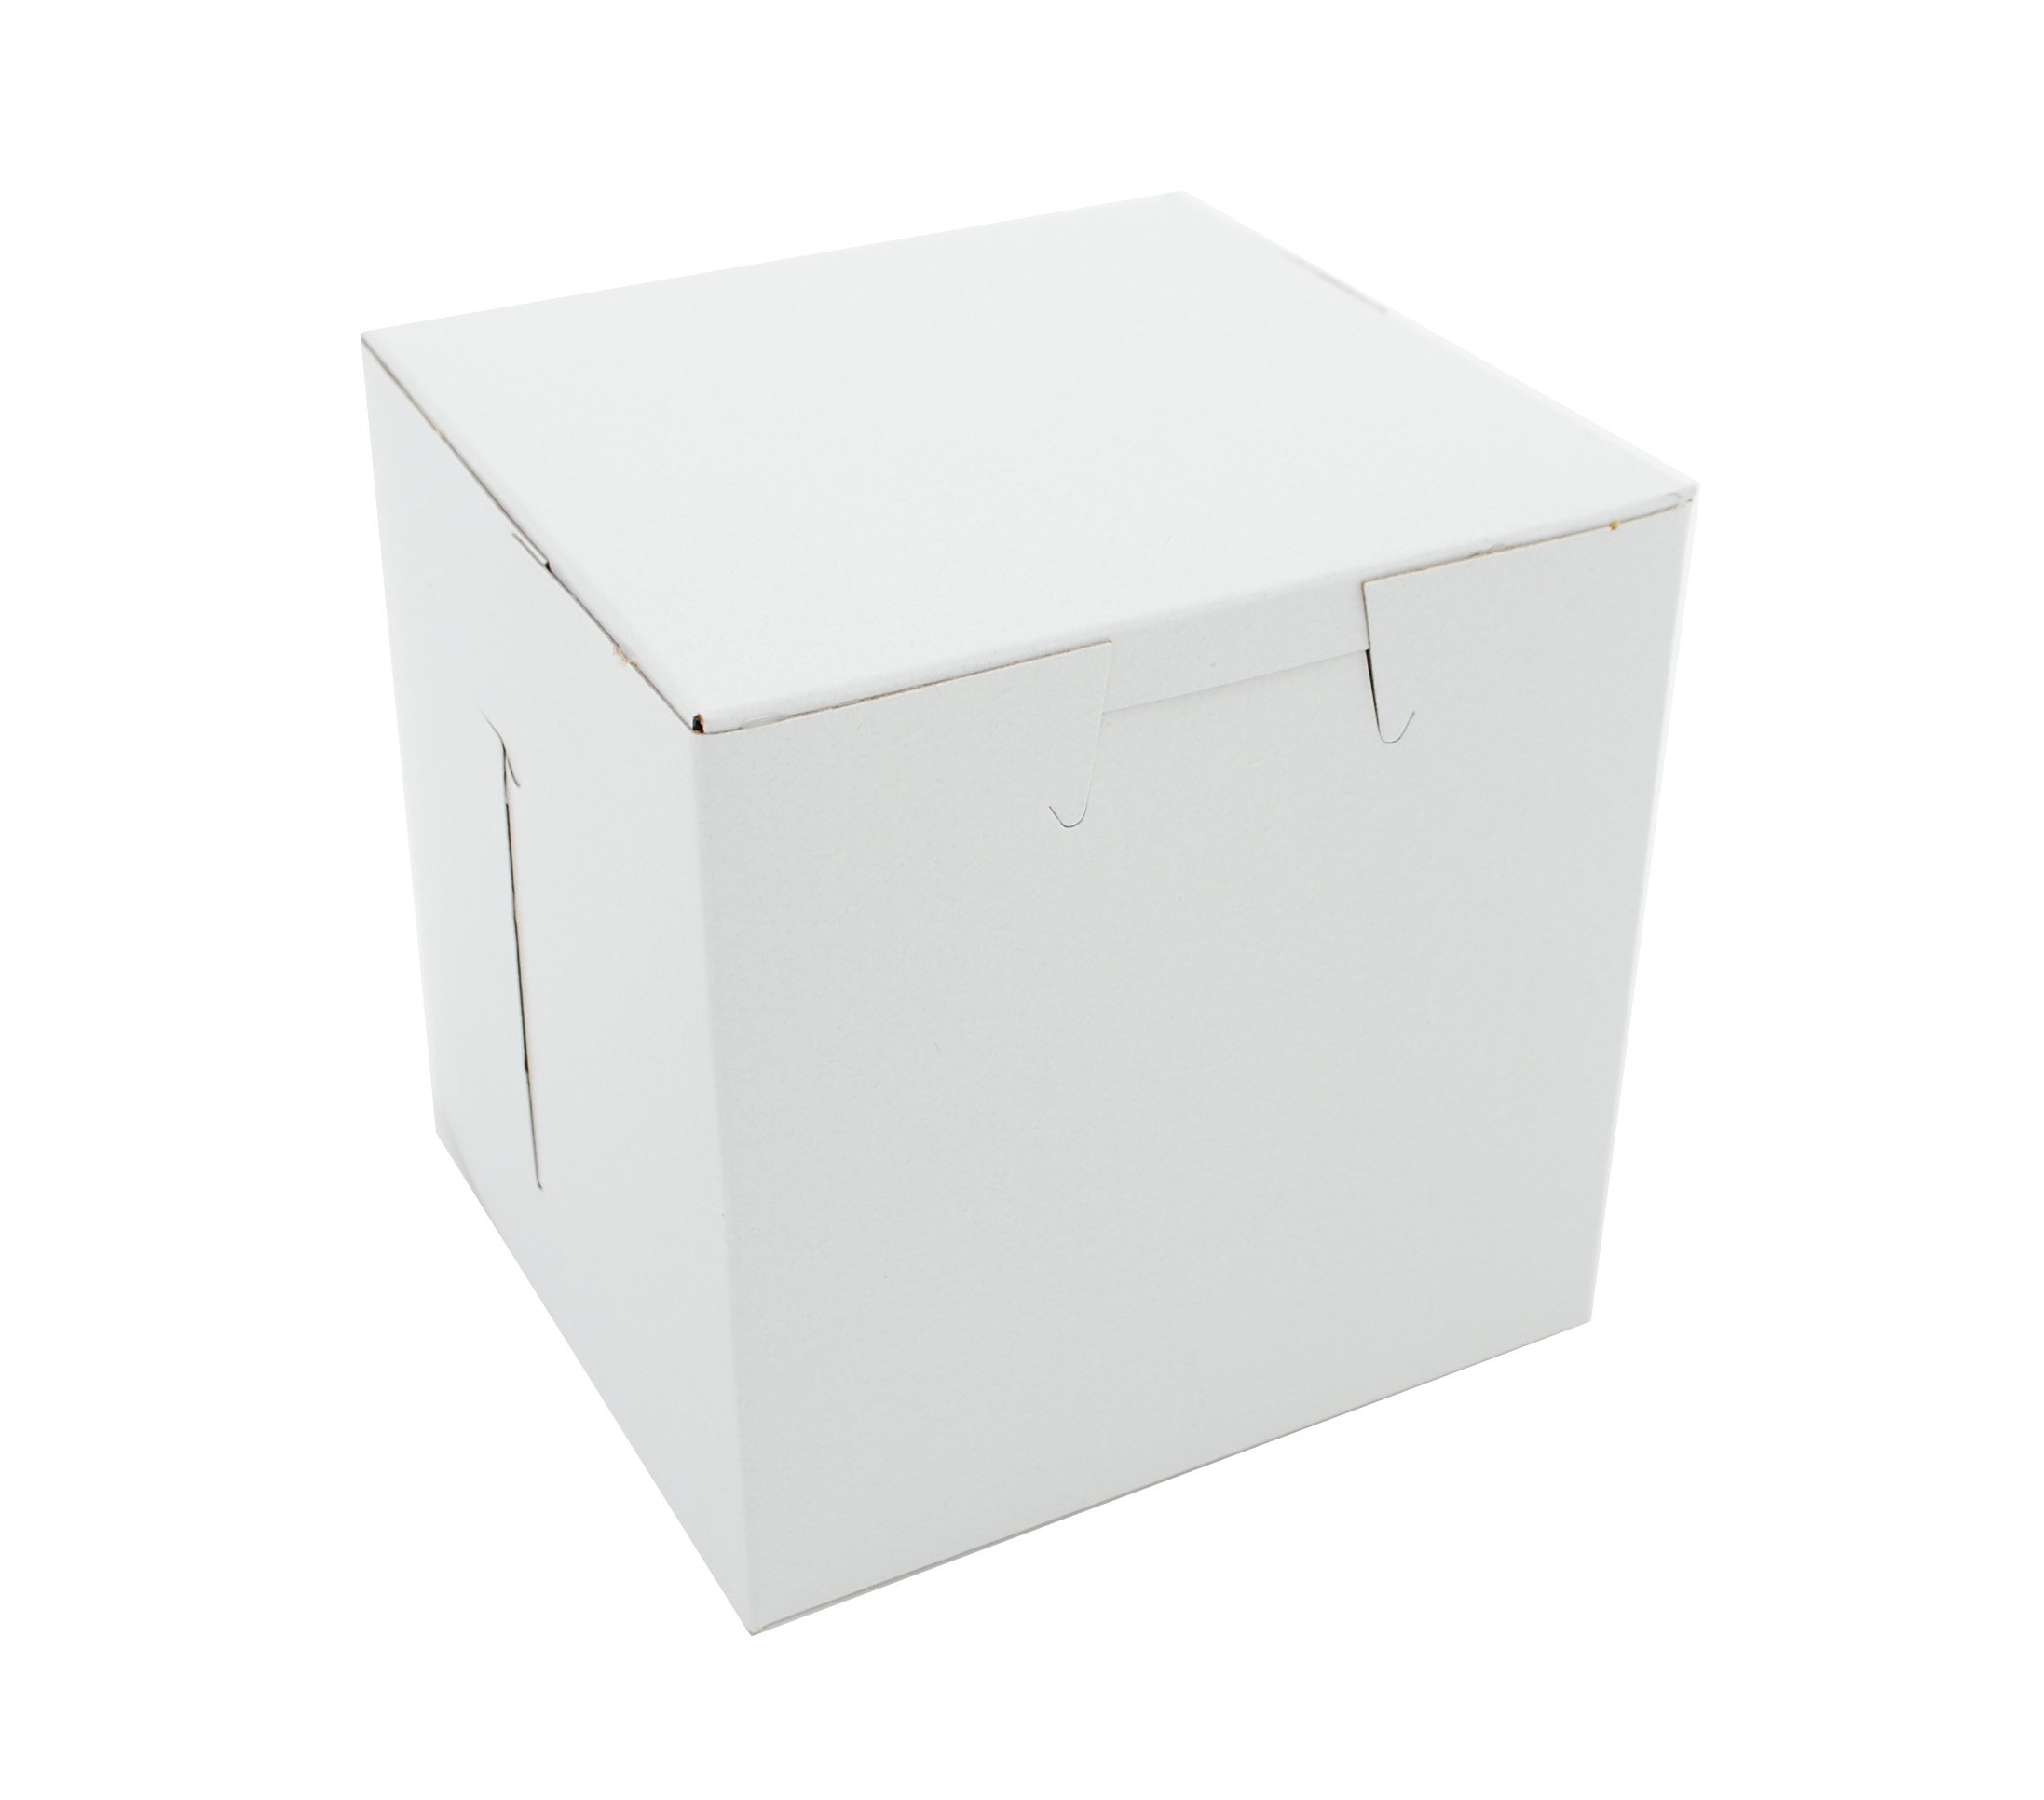 Southern Champion Tray 0908 Premium Clay Coated Kraft Paperboard White Non-Window Lock Corner Bakery Box, 4-1/2 Length x 4-1/2 Width x 4-1/2 Height (Case of 200)